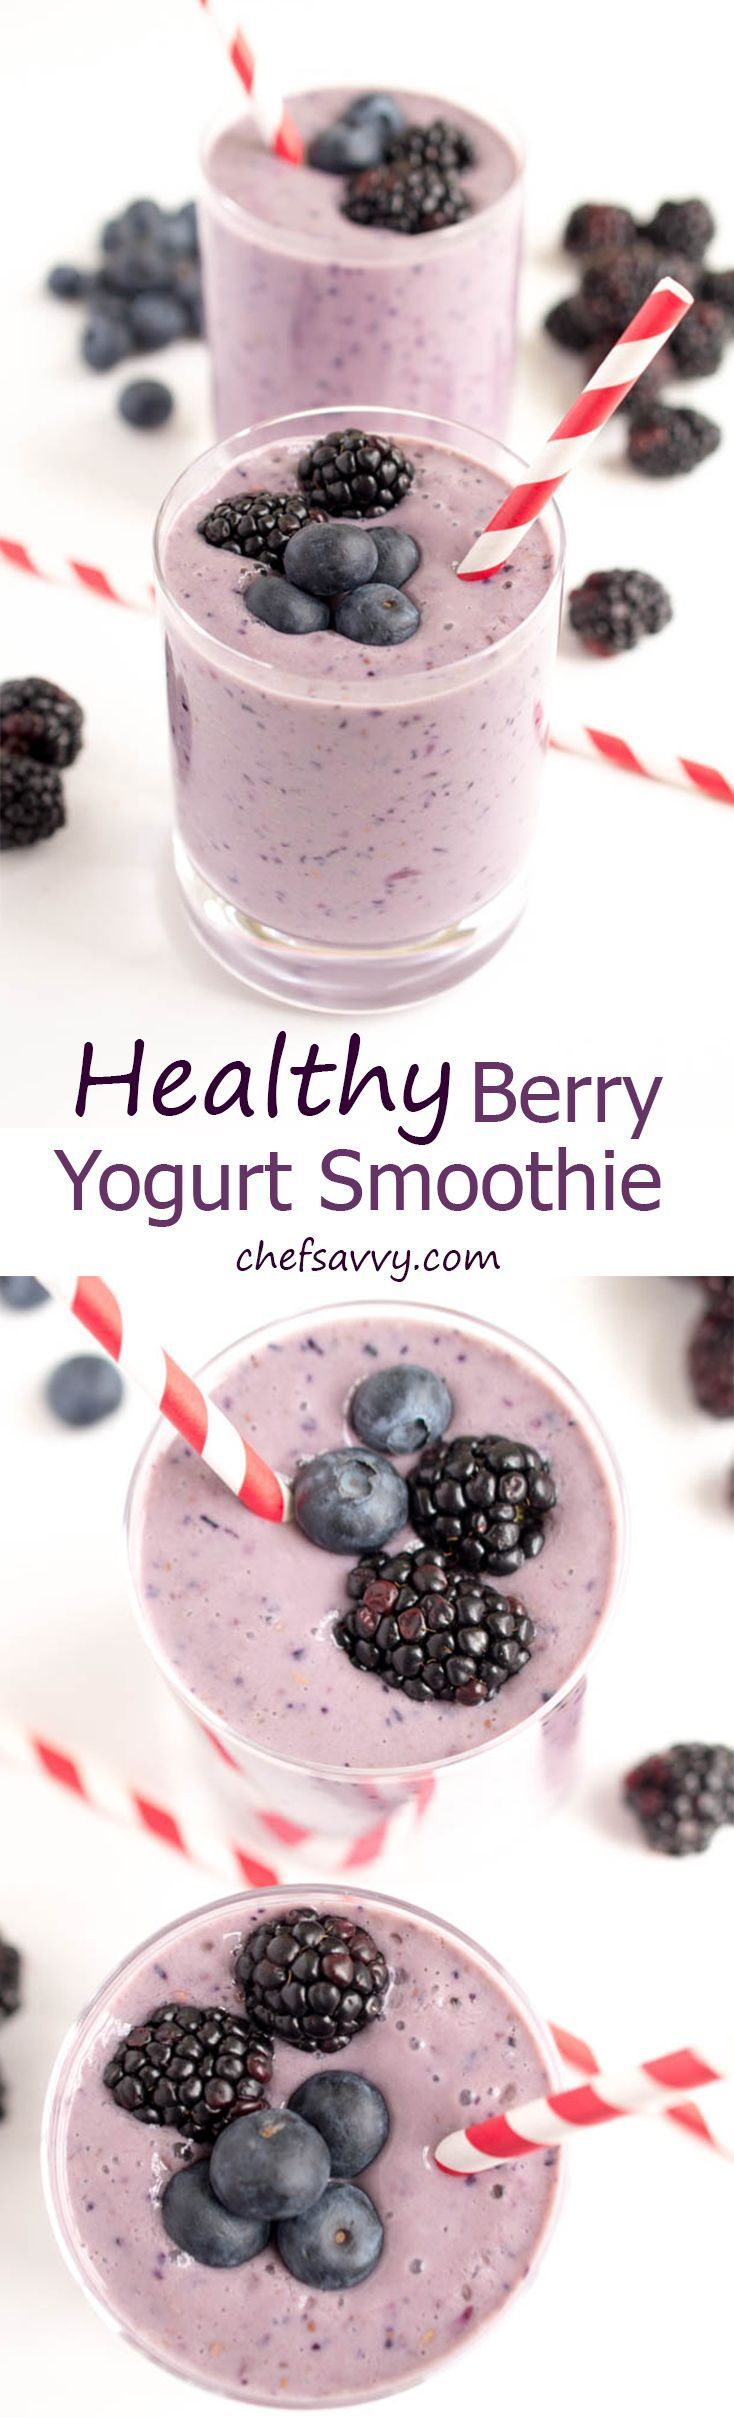 Yogurt Smoothie A super simple 5 ingredient Gluten Free Healthy Berry Yogurt Smoothie. Protein packed to keep you full throughout the day. A perfect on the go breakfast! (I use coconut milk - allergy free)A super simple 5 ingredient Gluten Free Healthy Berry Yogurt Smoothie. Protein packed to keep you full throughout the day. A perfect o...